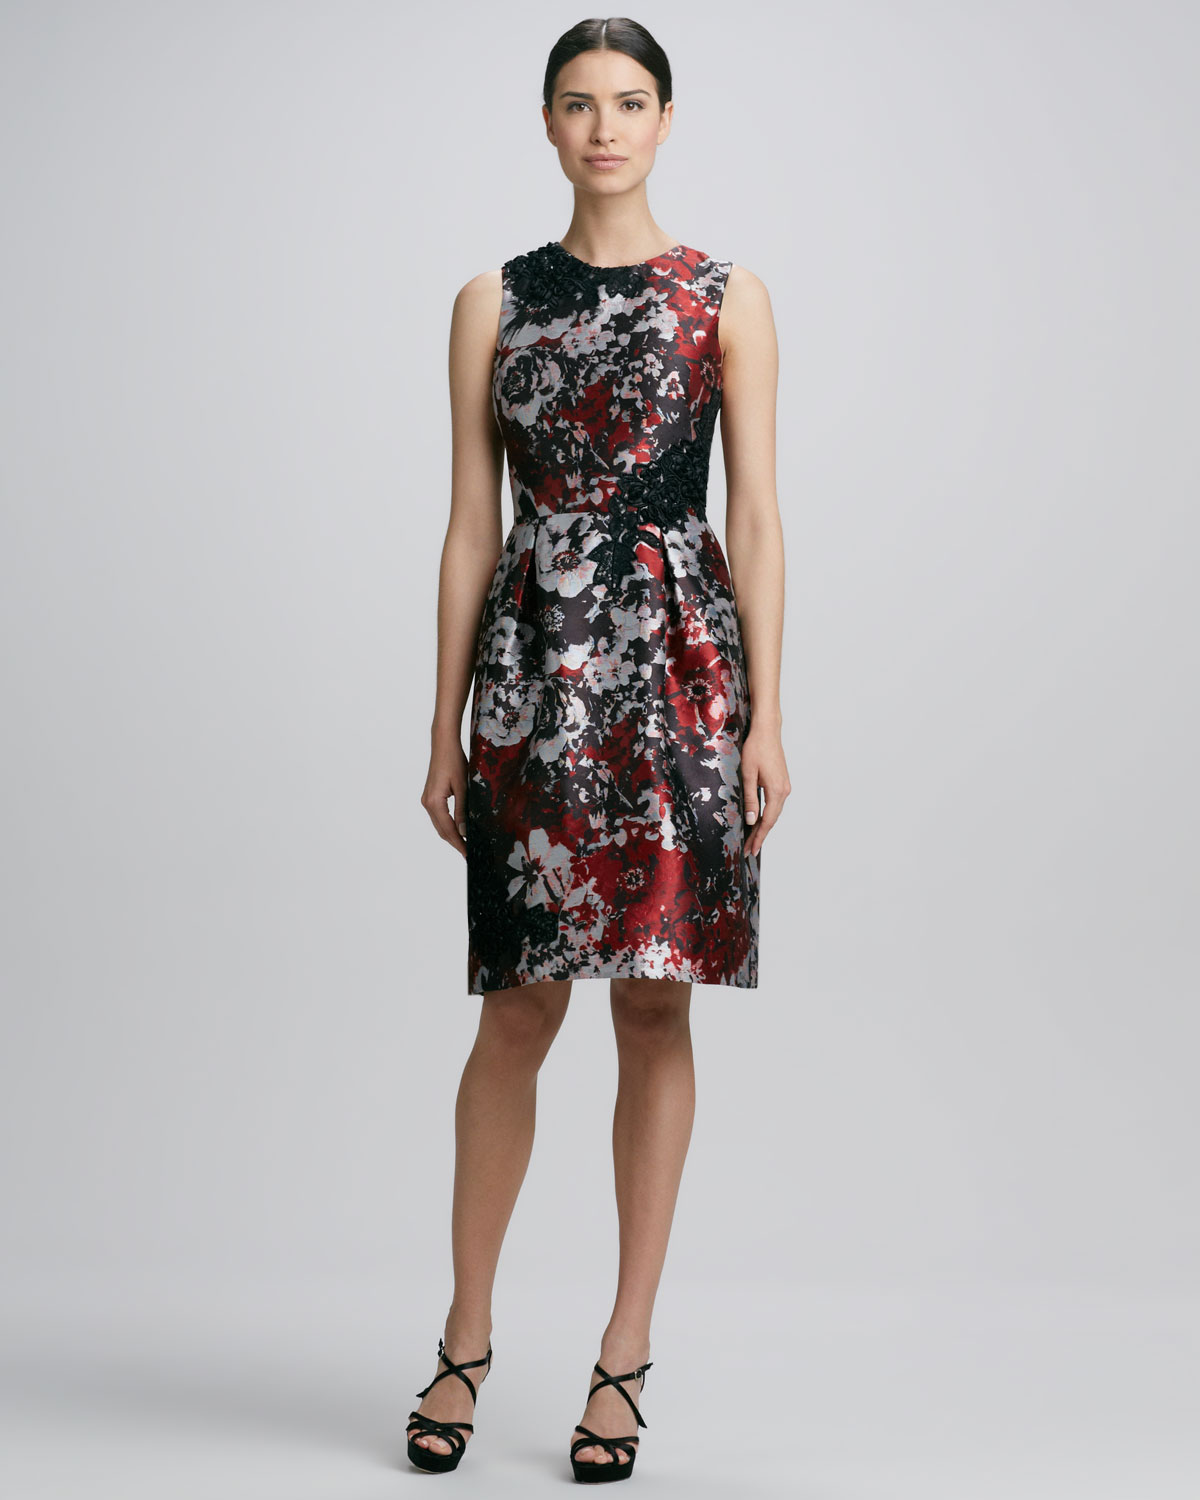 David meister Printed Embroidered Cocktail Dress - Lyst